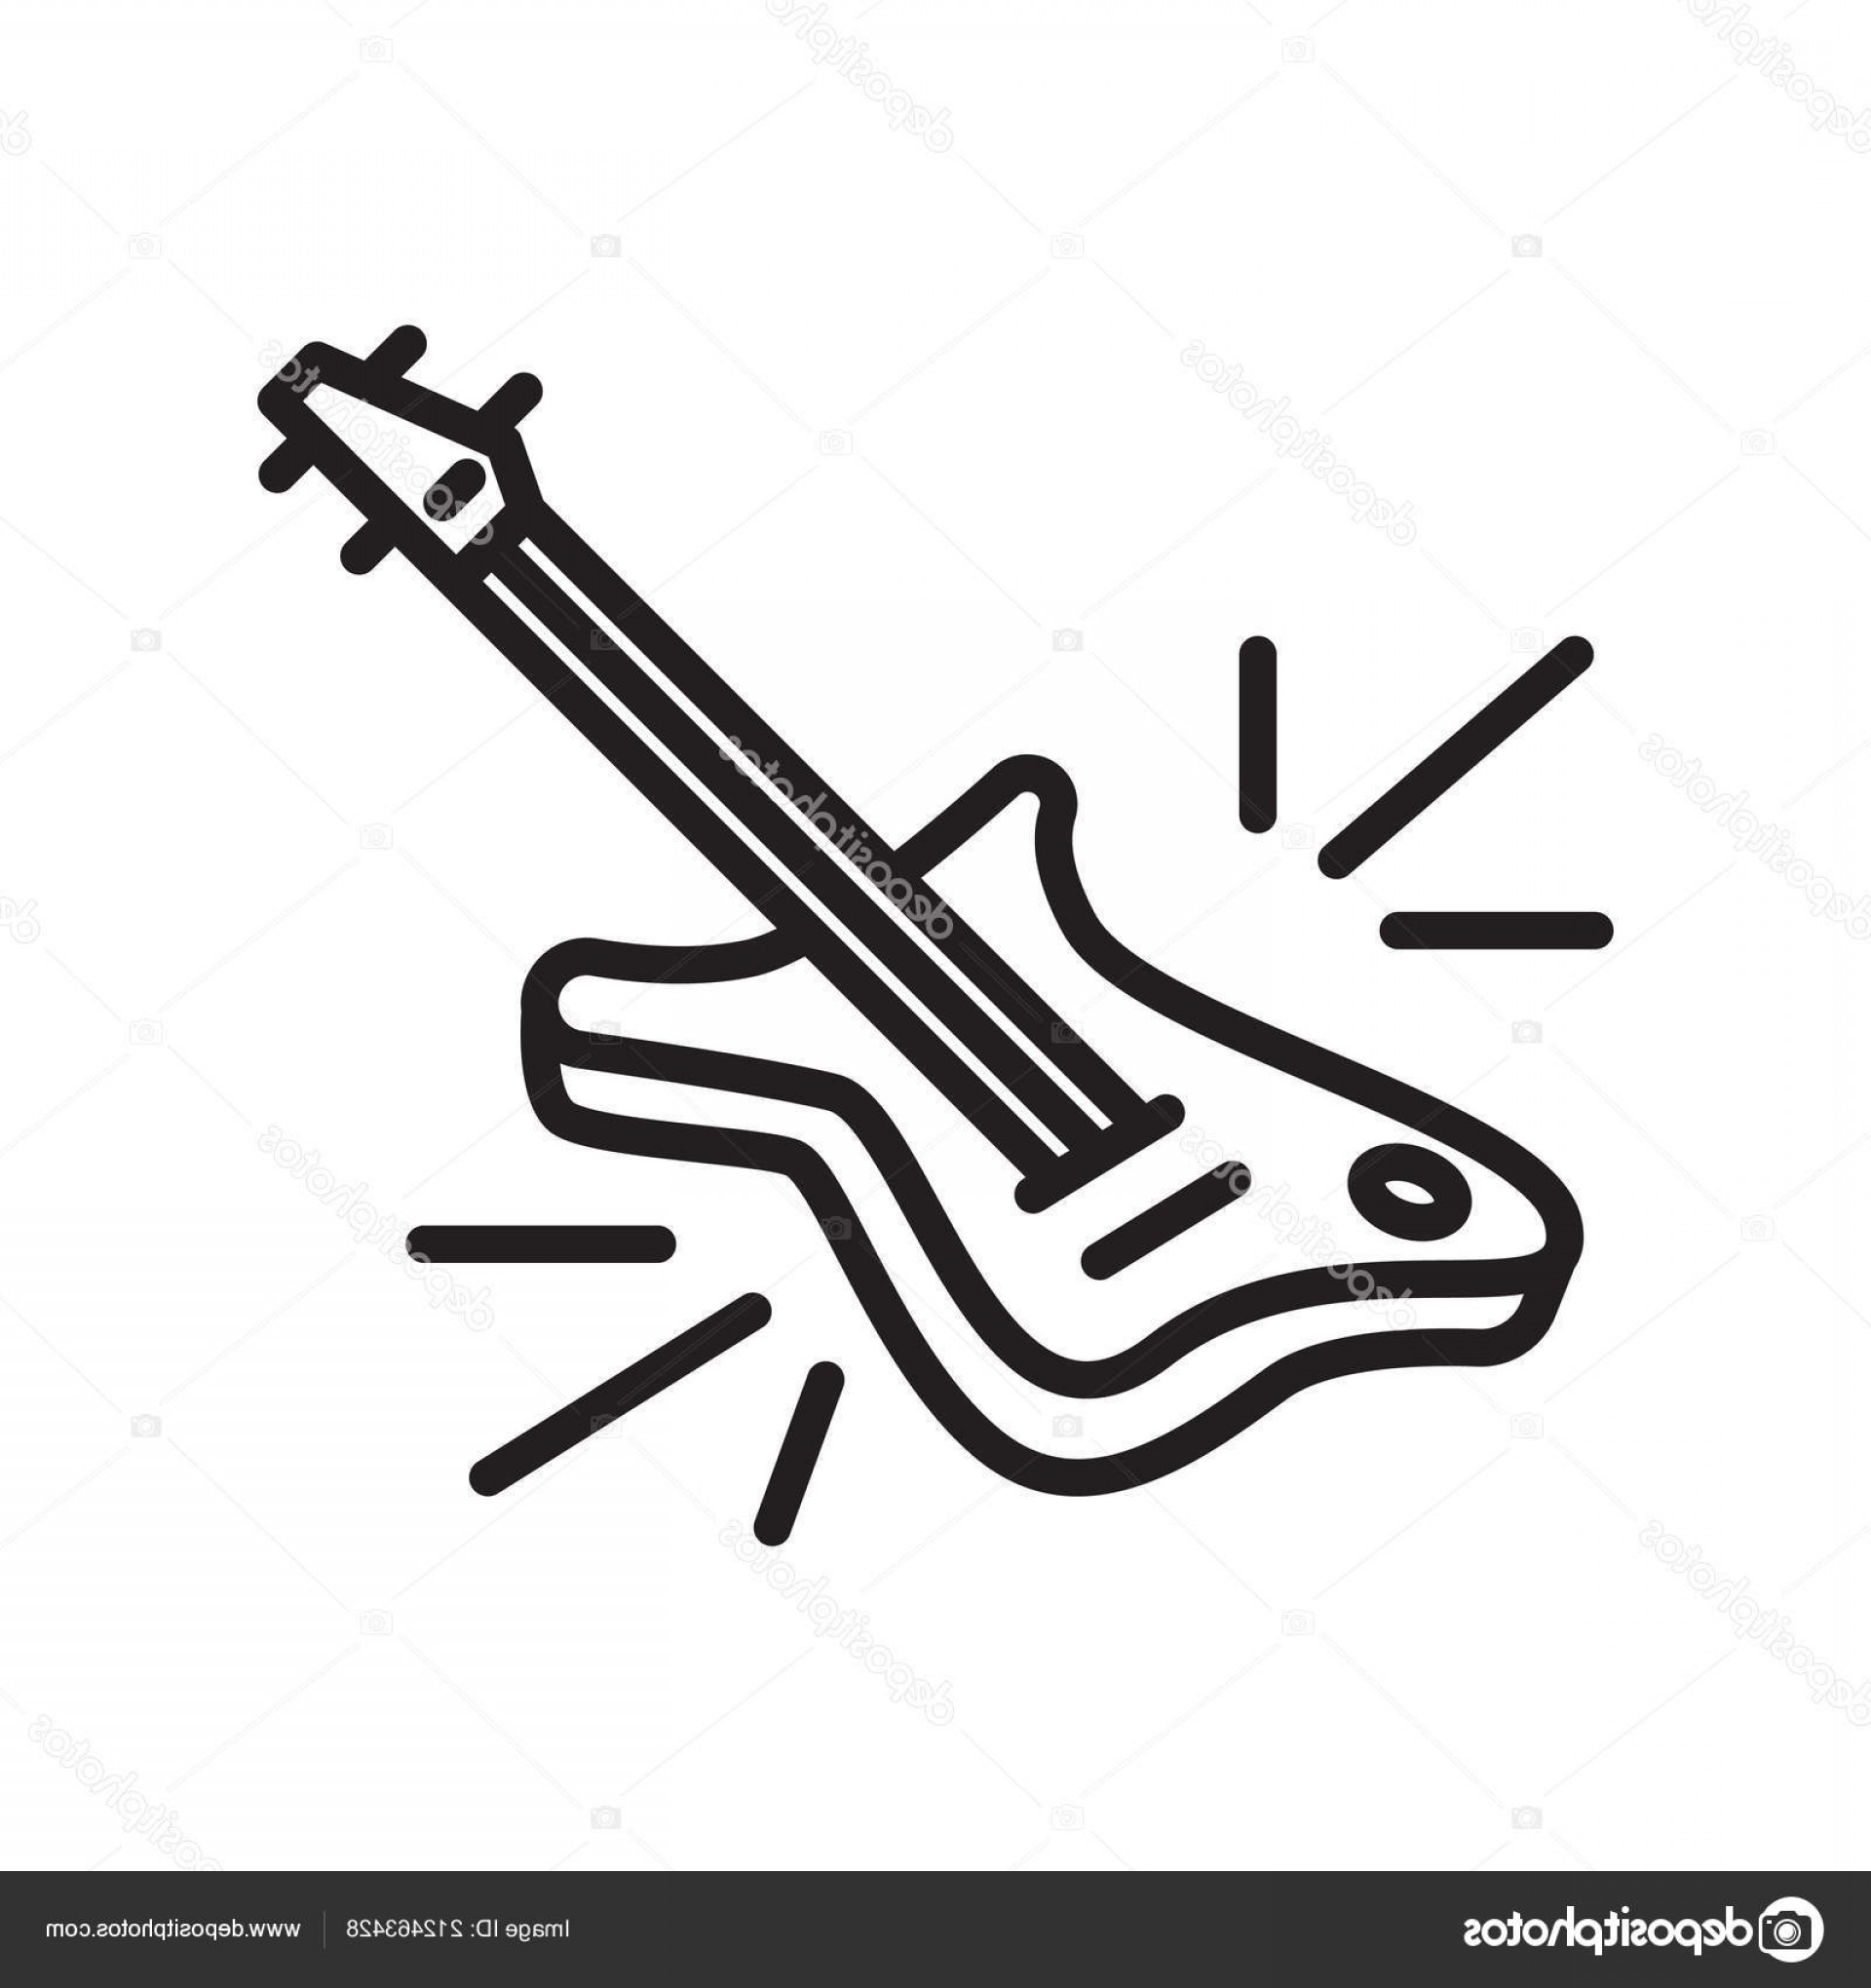 Vector Guitar Clip Art Black And White: Stock Illustration Guitar Icon Vector Isolated On